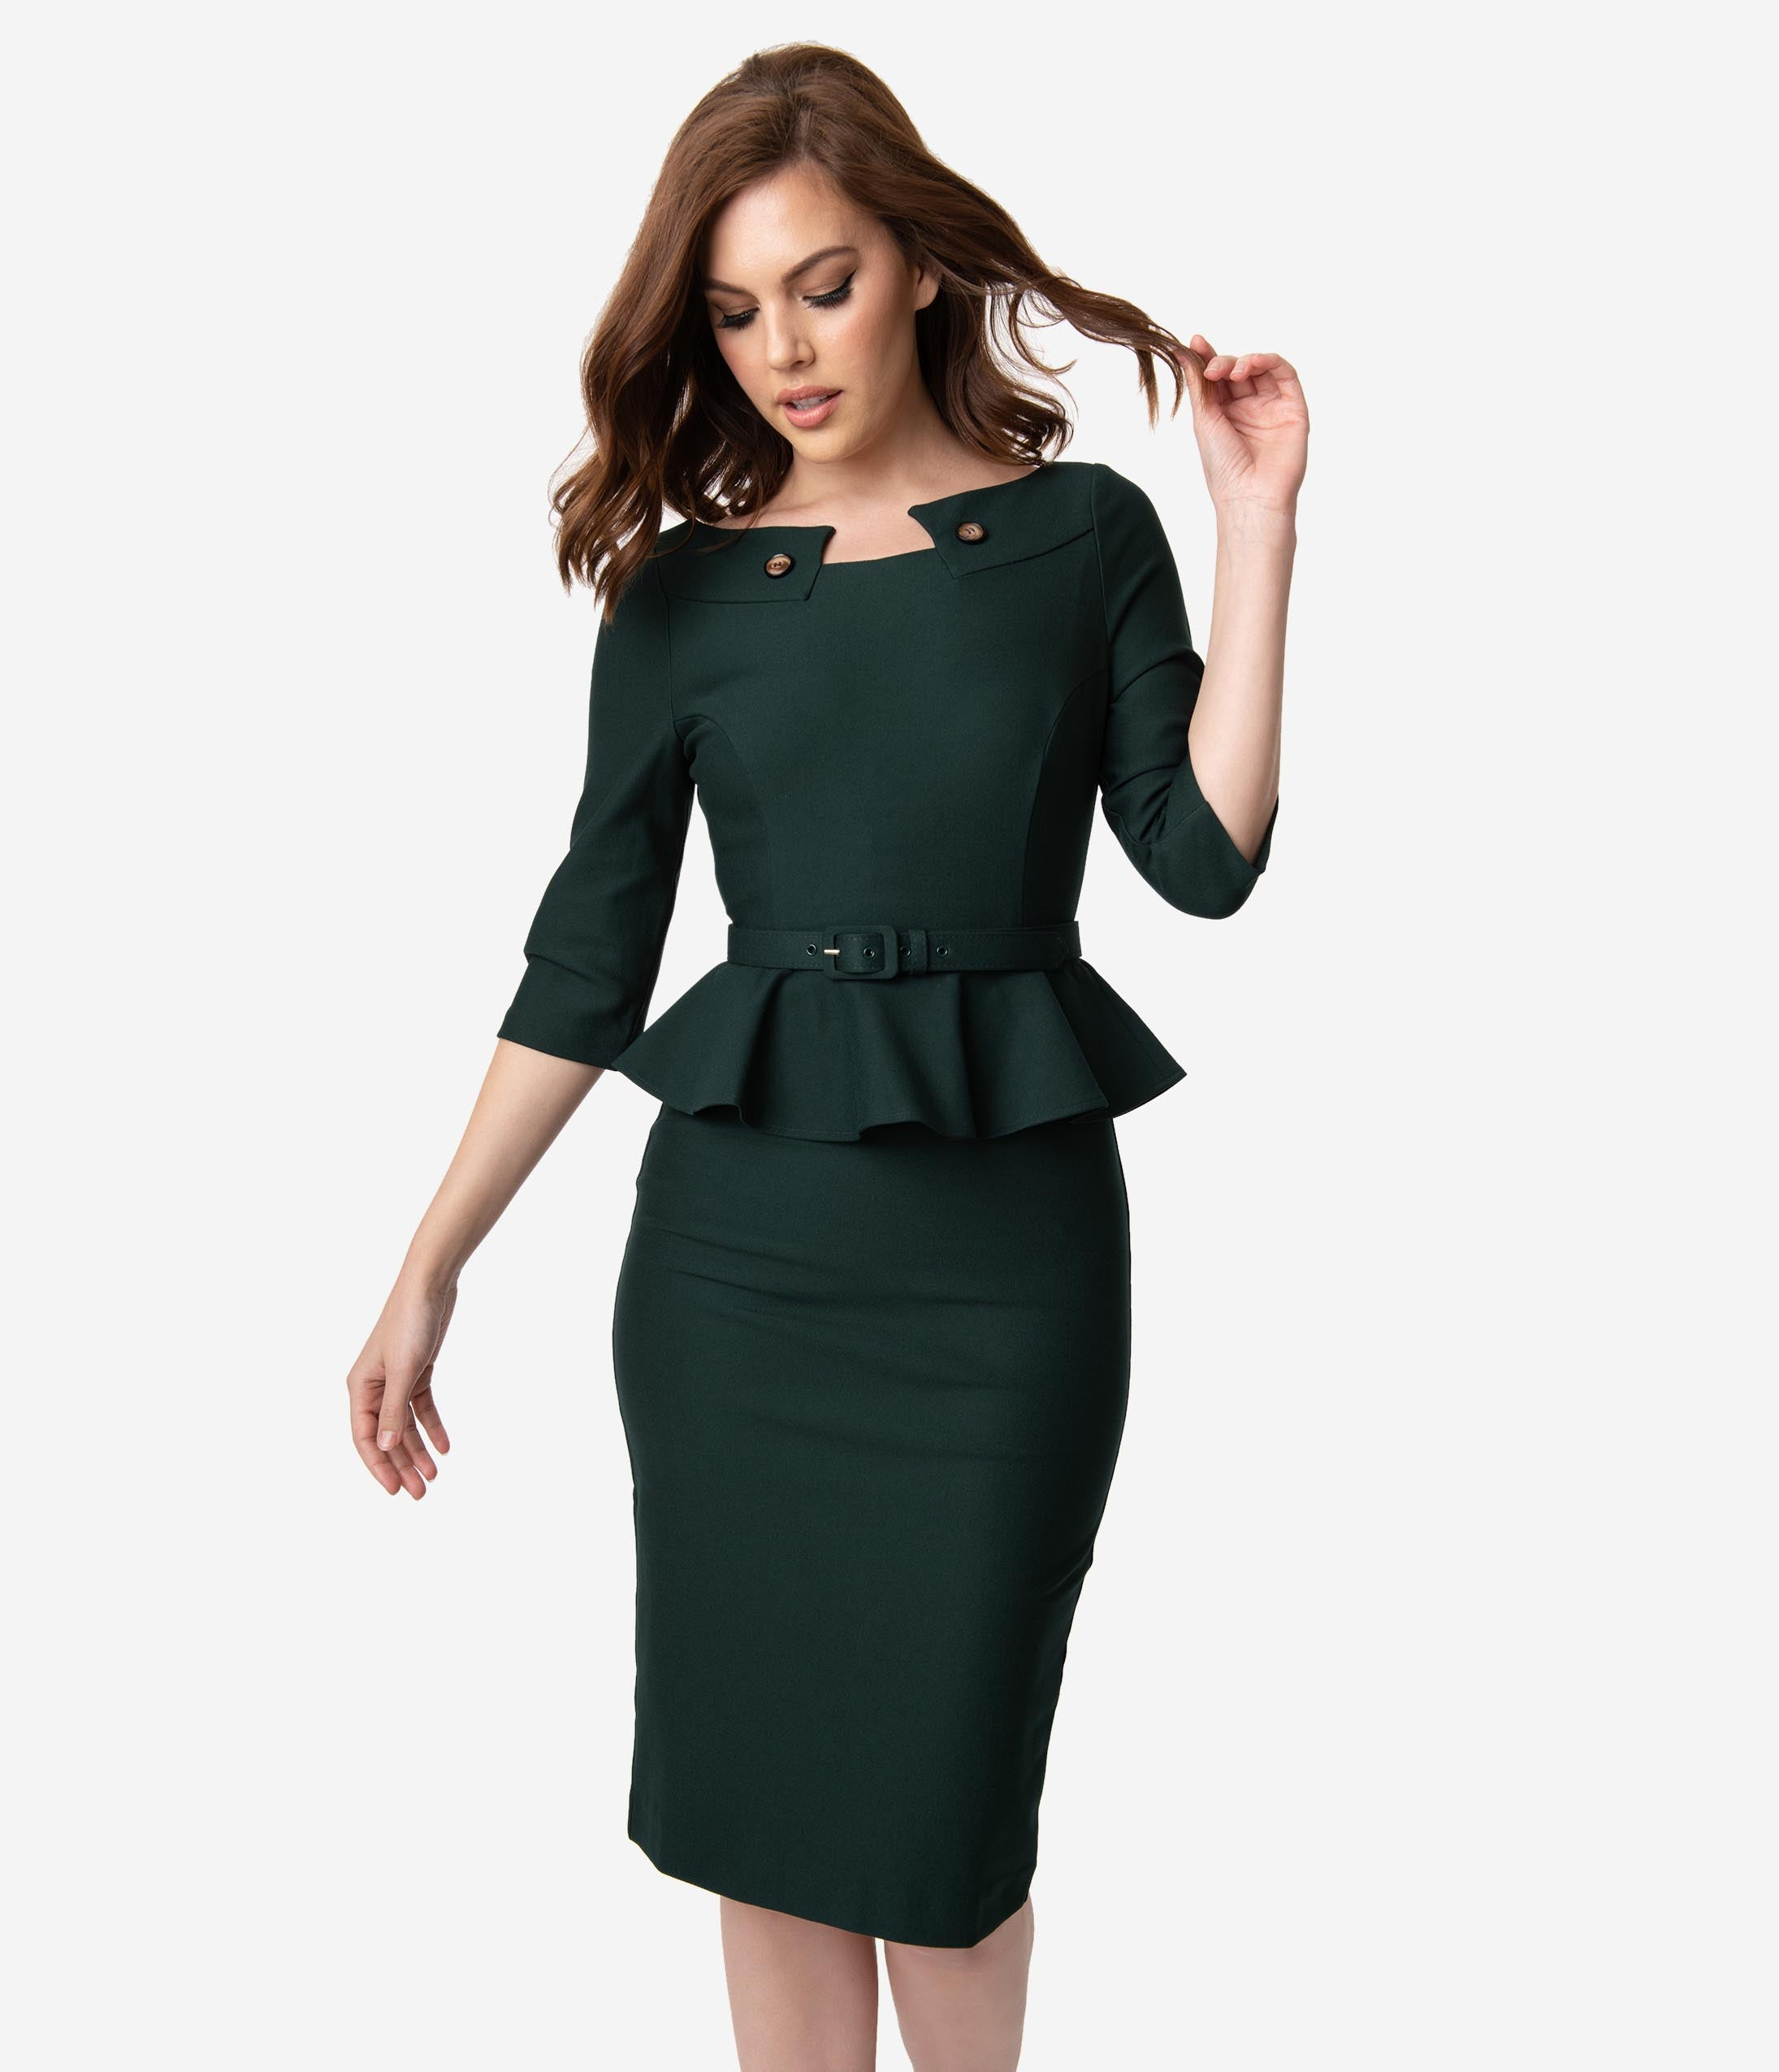 Vintage Christmas Gift Ideas for Women Vintage Diva 1960S Style Emerald Green Peplum Irene Wiggle Dress $122.00 AT vintagedancer.com